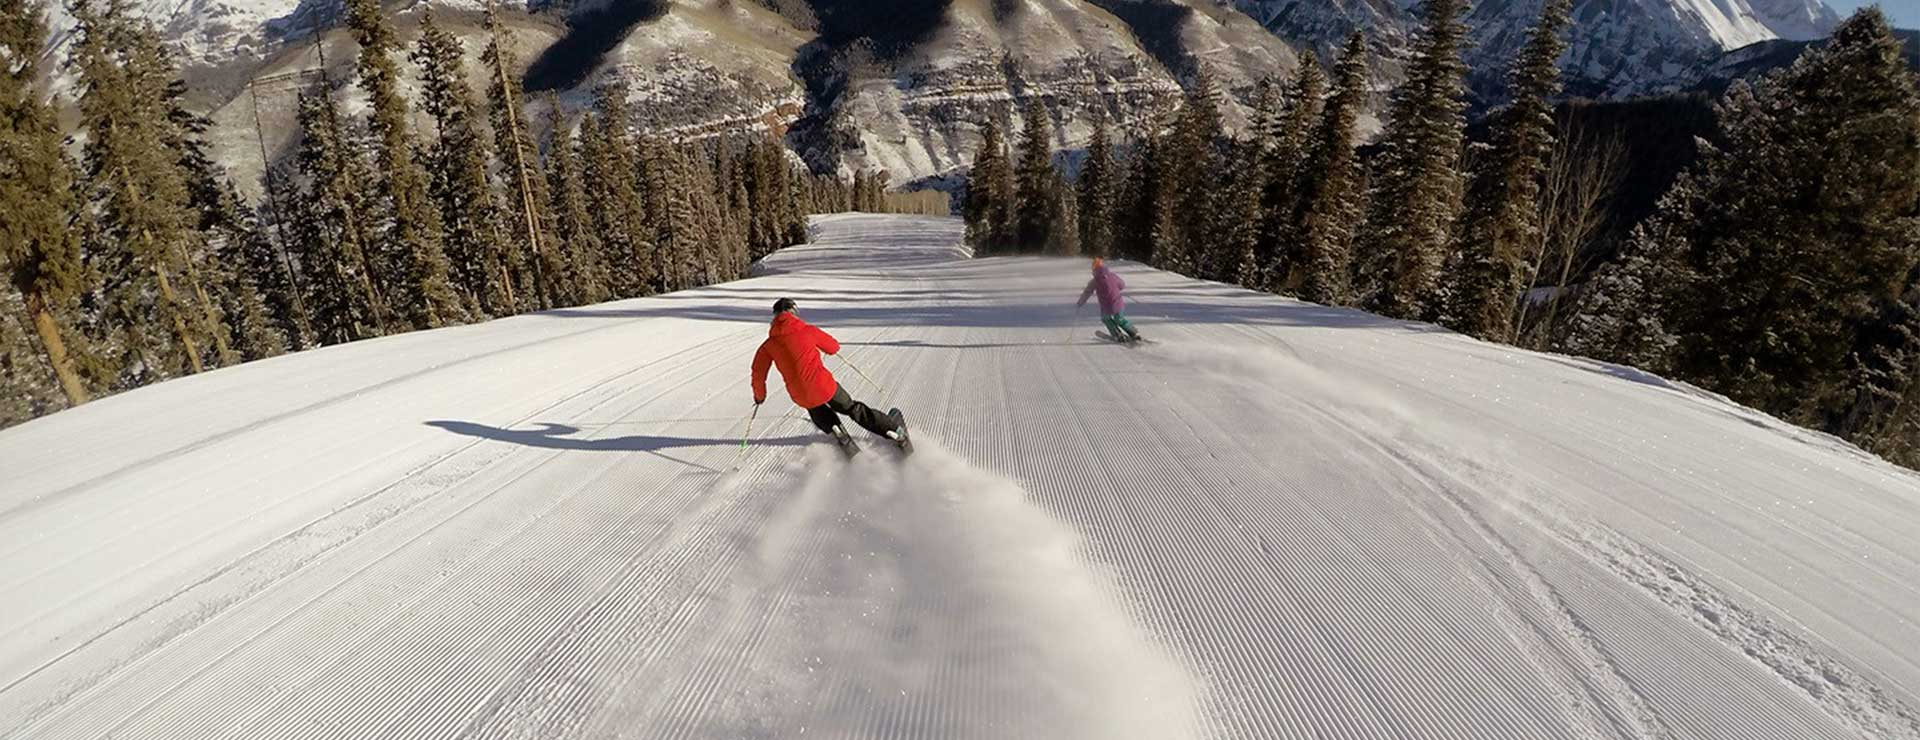 Get Discounted Lift Tickets